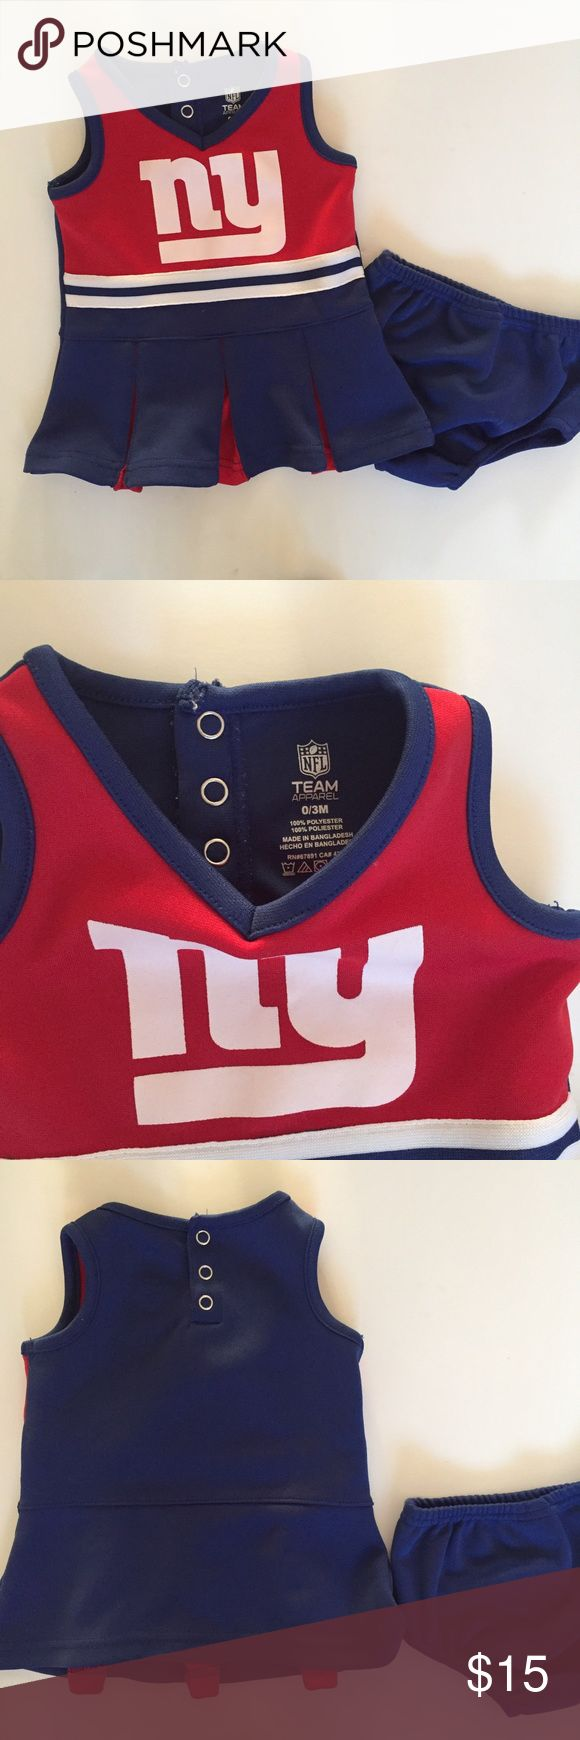 NY Giants cheerleading outfit 2 Piece Outfit. Think it's runs a little bigger than size stated. Gently used. Check out my other listings for Giants gear. Offers accepted on bundles. NFL Matching Sets